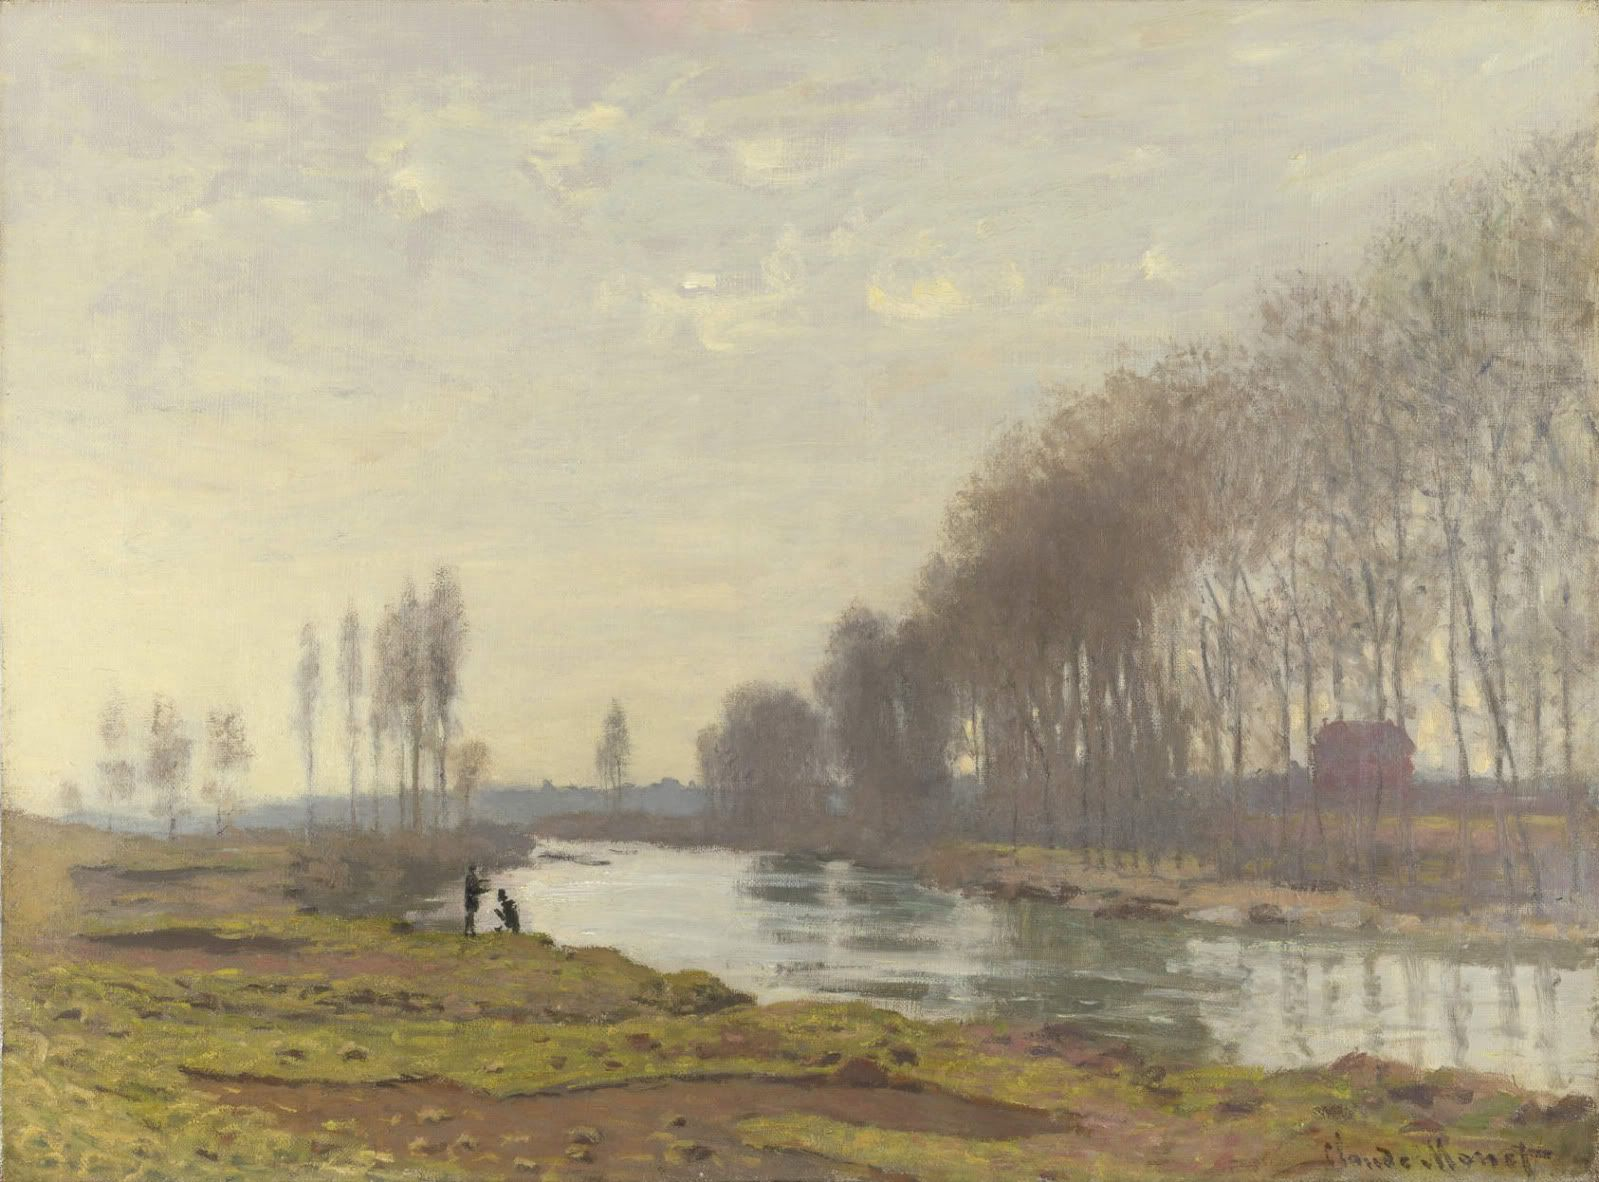 The Petit Bras of the Seine at Argenteuil. 1872 Claude-Oscar Monet ( Oil on canvas, 52.6 x 71.8 cm, The National Gallery, London ).